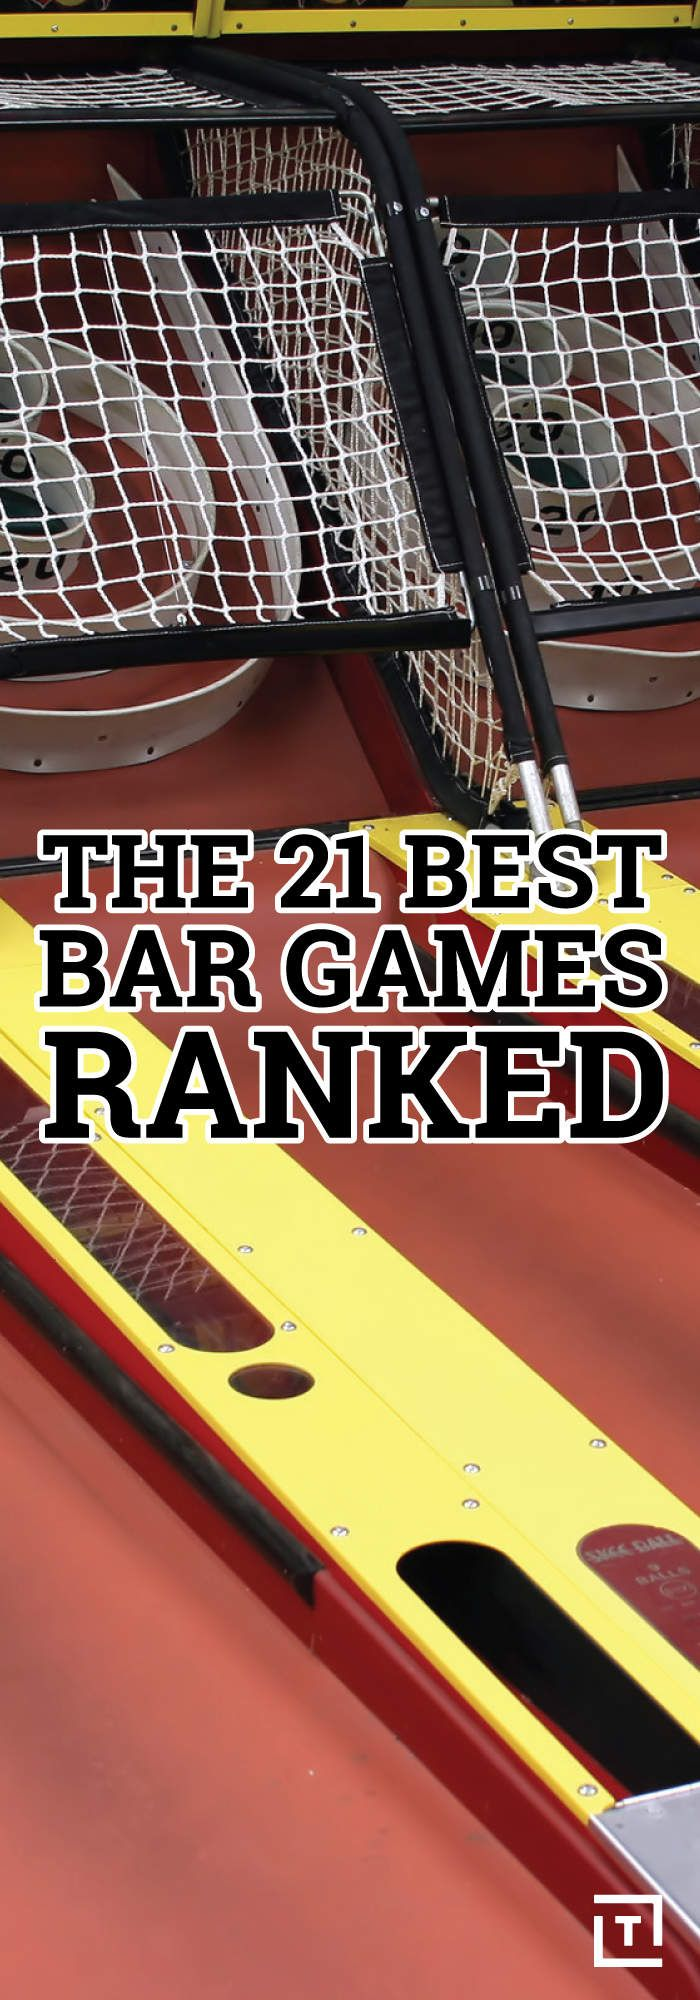 THE 21 BEST BAR GAMES, DEFINITIVELY RANKED